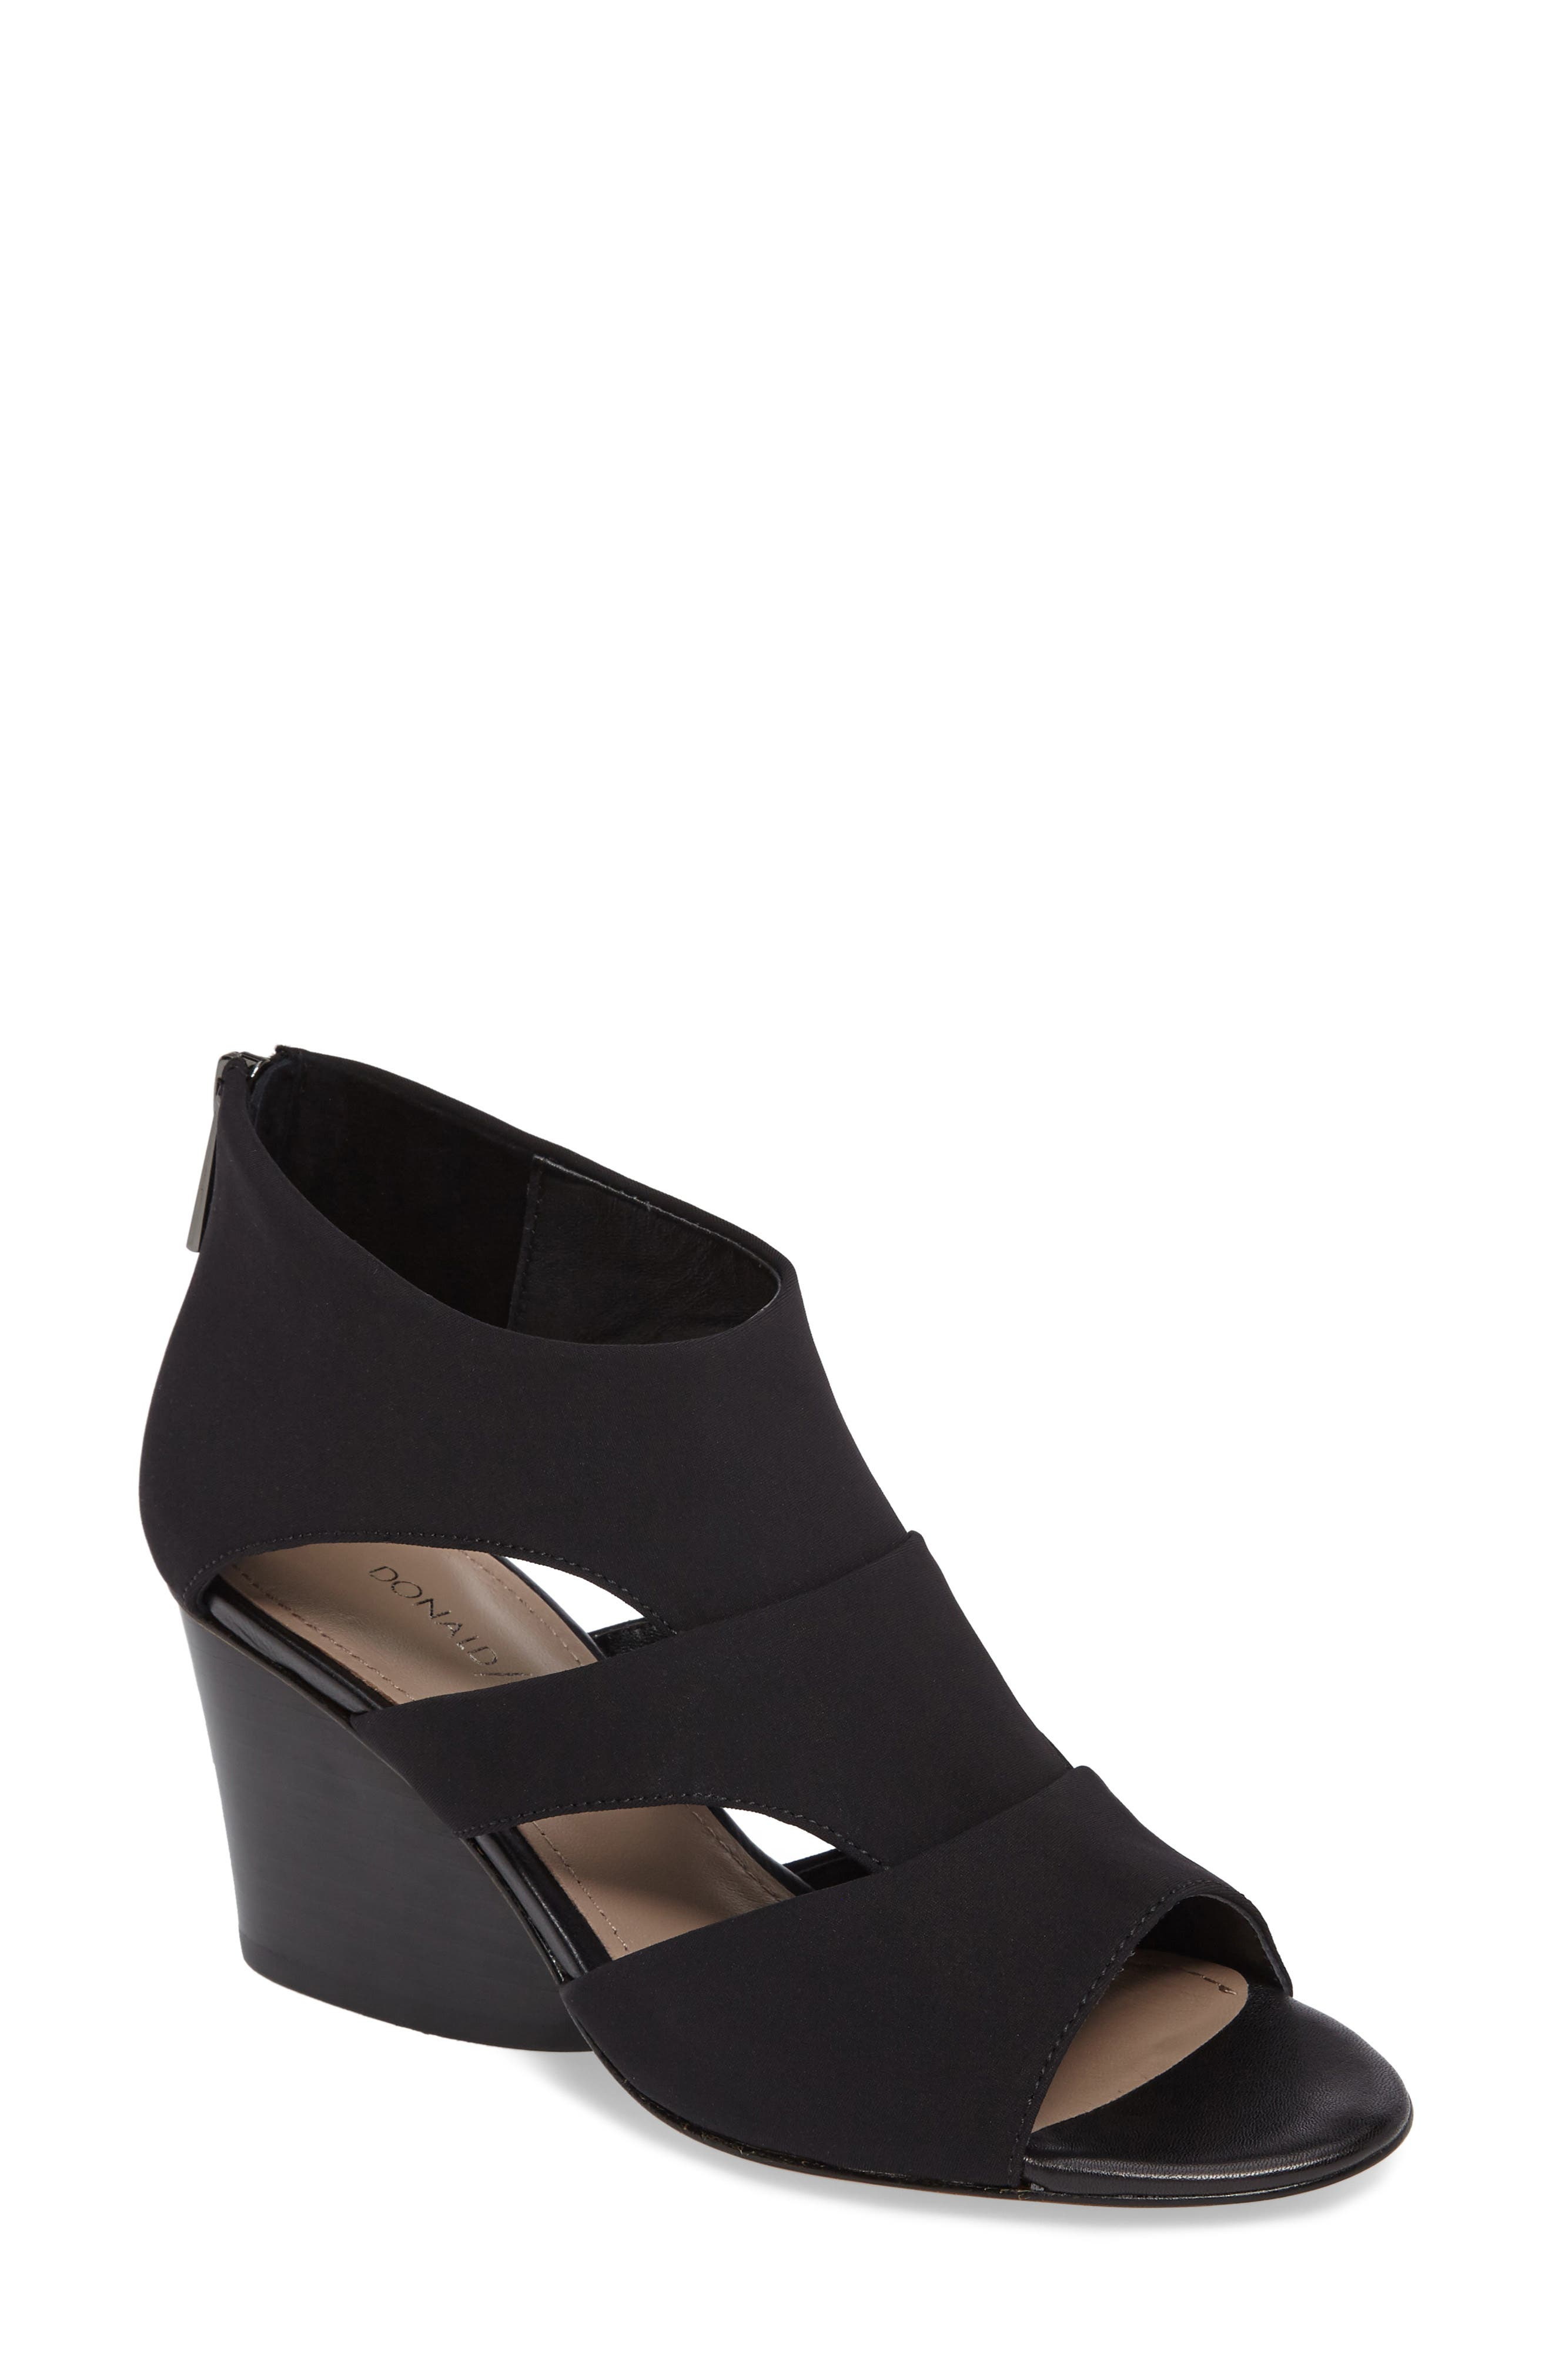 Donald J Pliner Jenkin Wedge Sandal (Women)